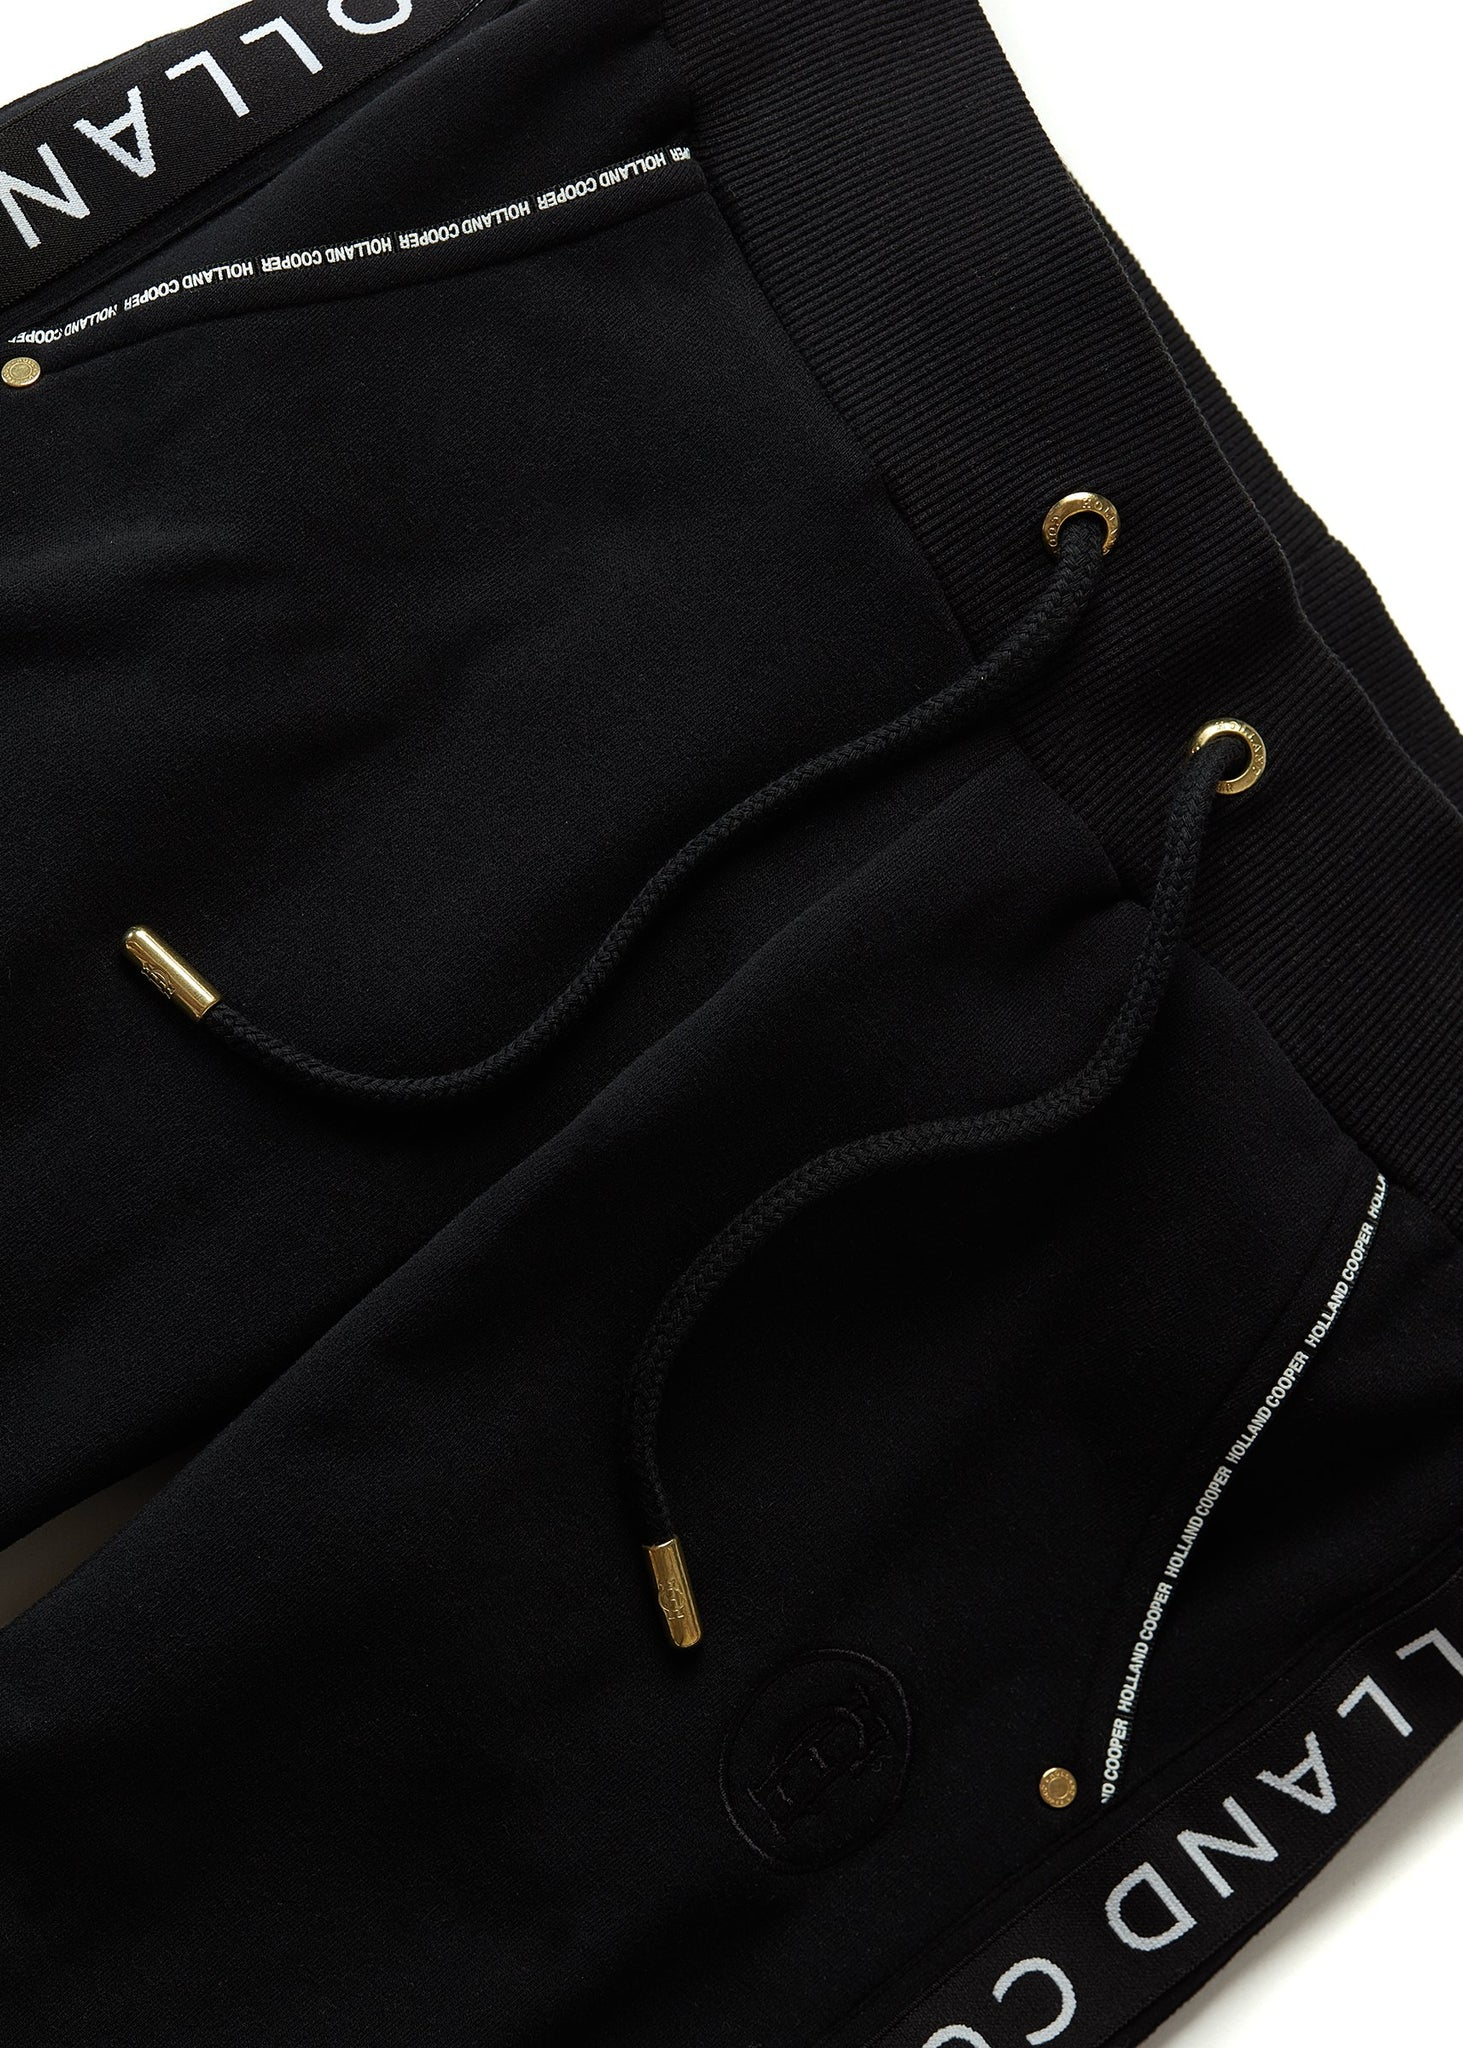 Deluxe Jogger (Black)